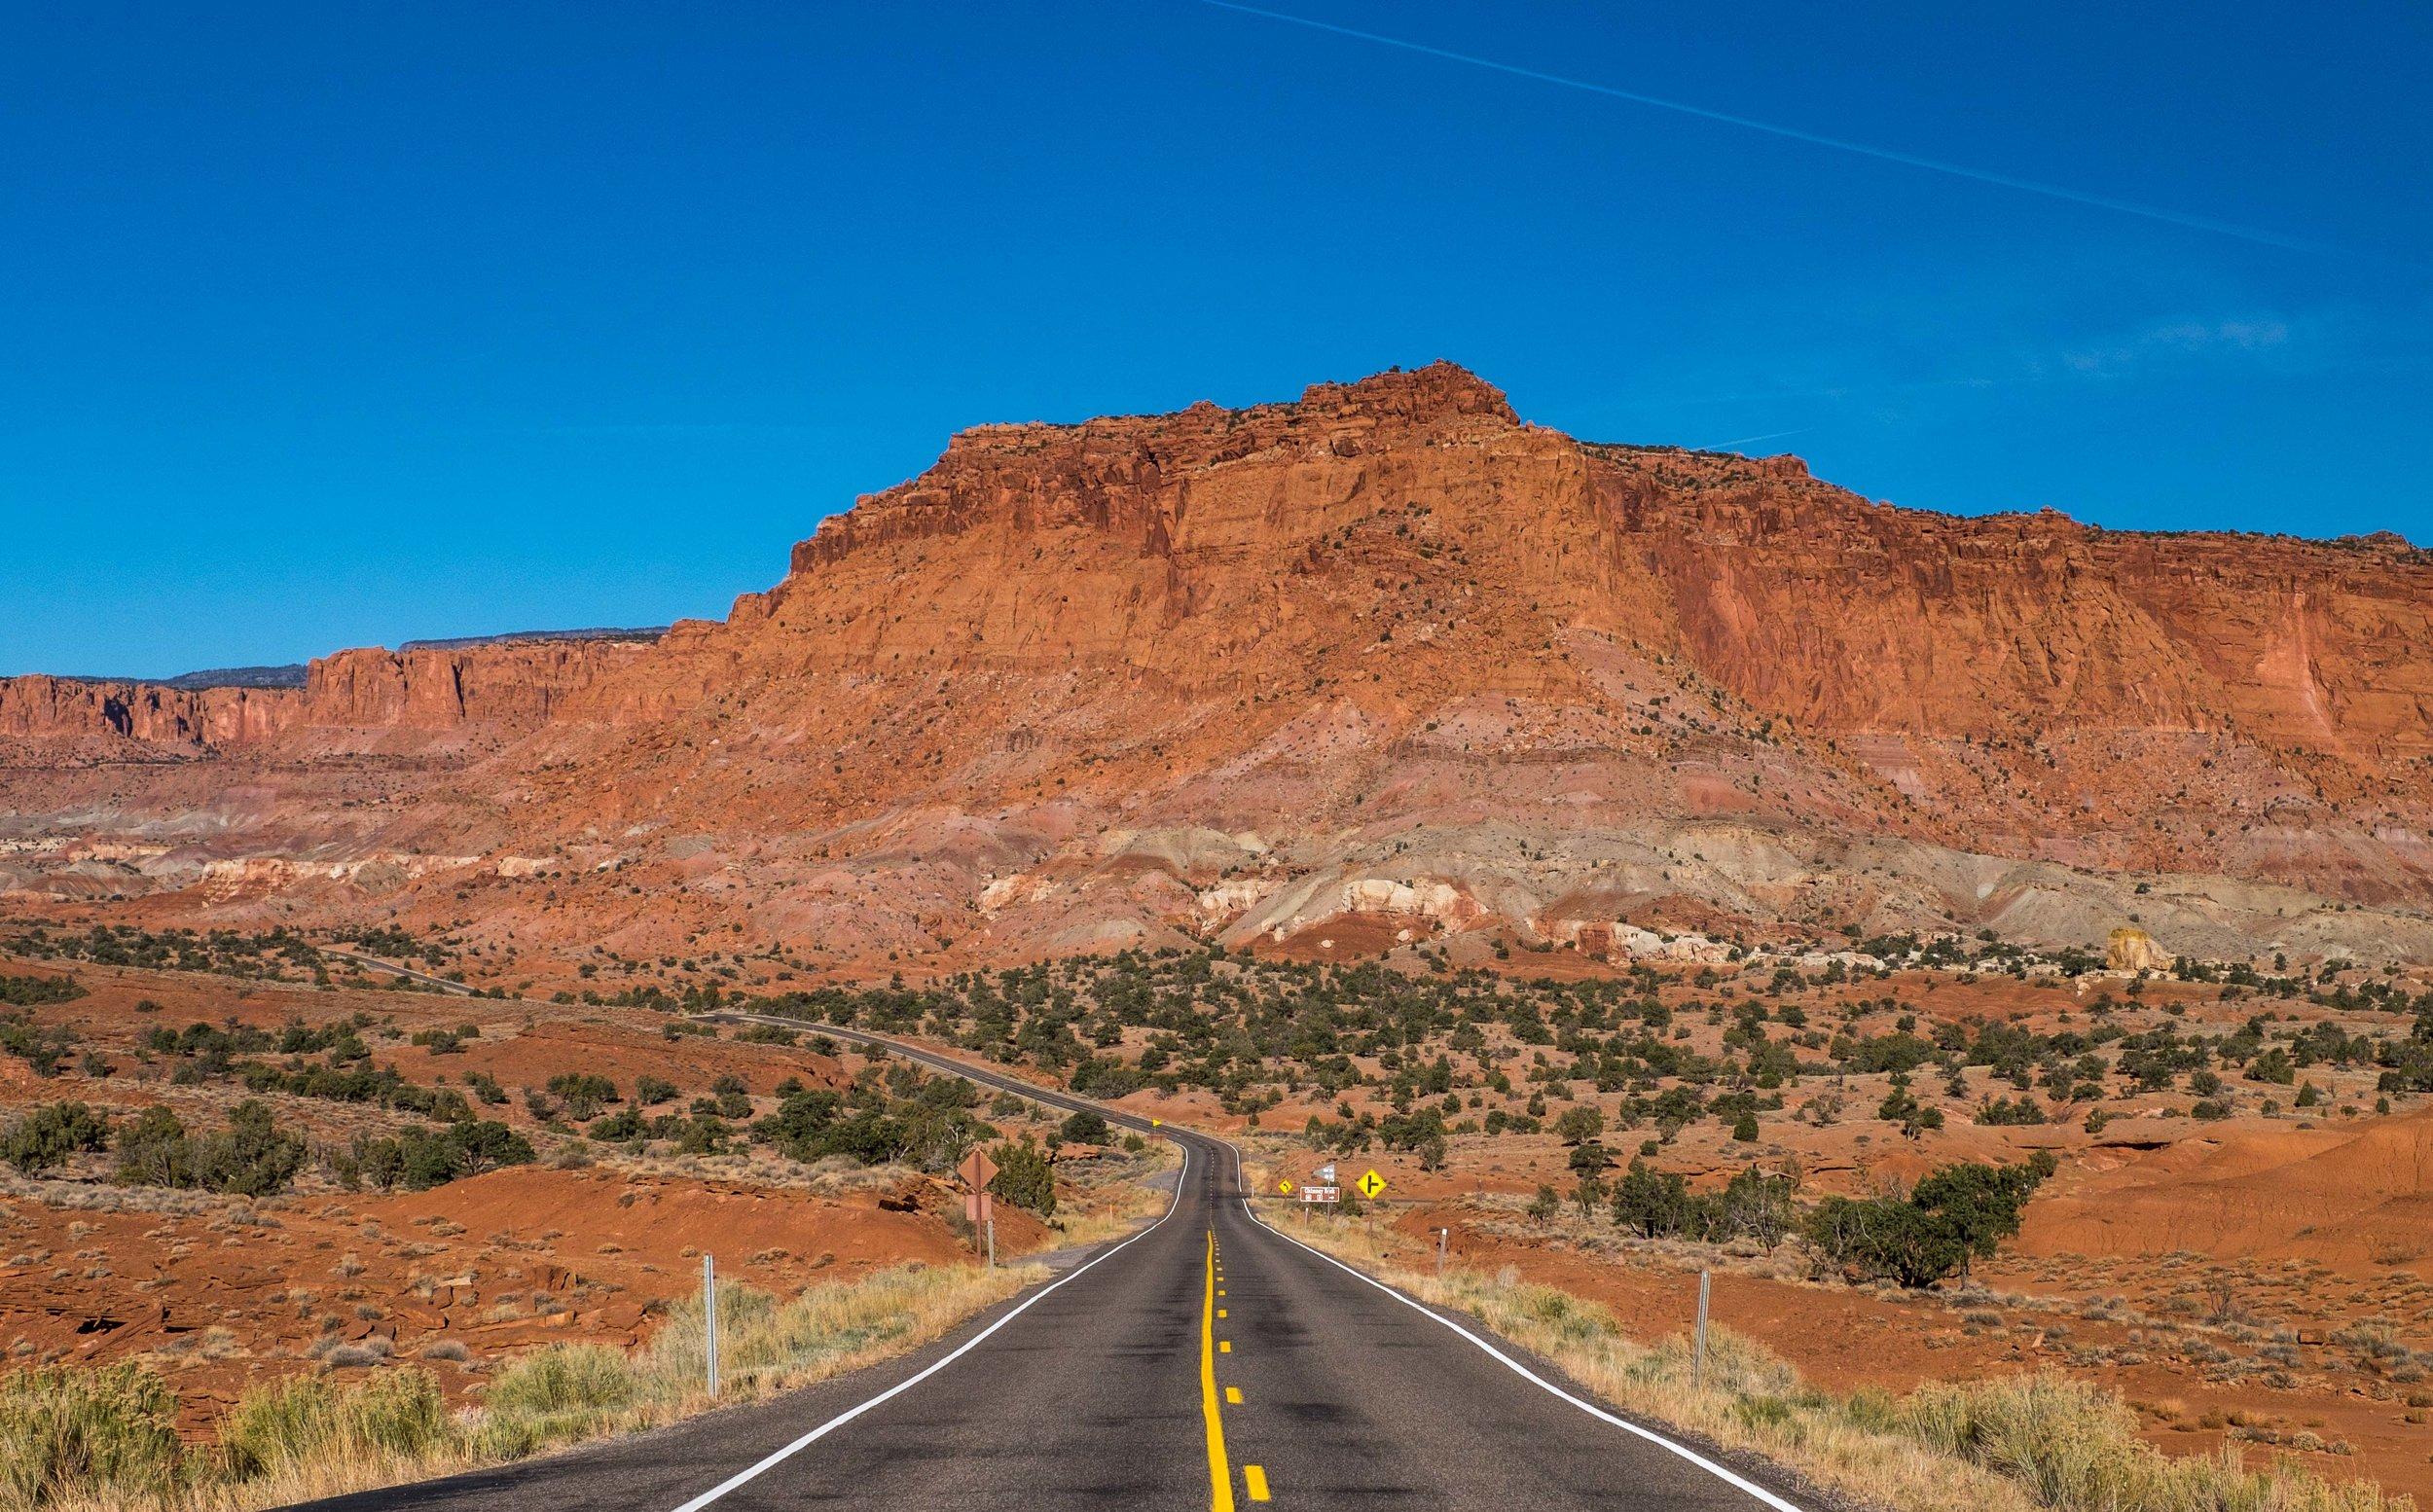 The roads of the southwest are fantastic, this one inside of Capitol Reef is no exception.